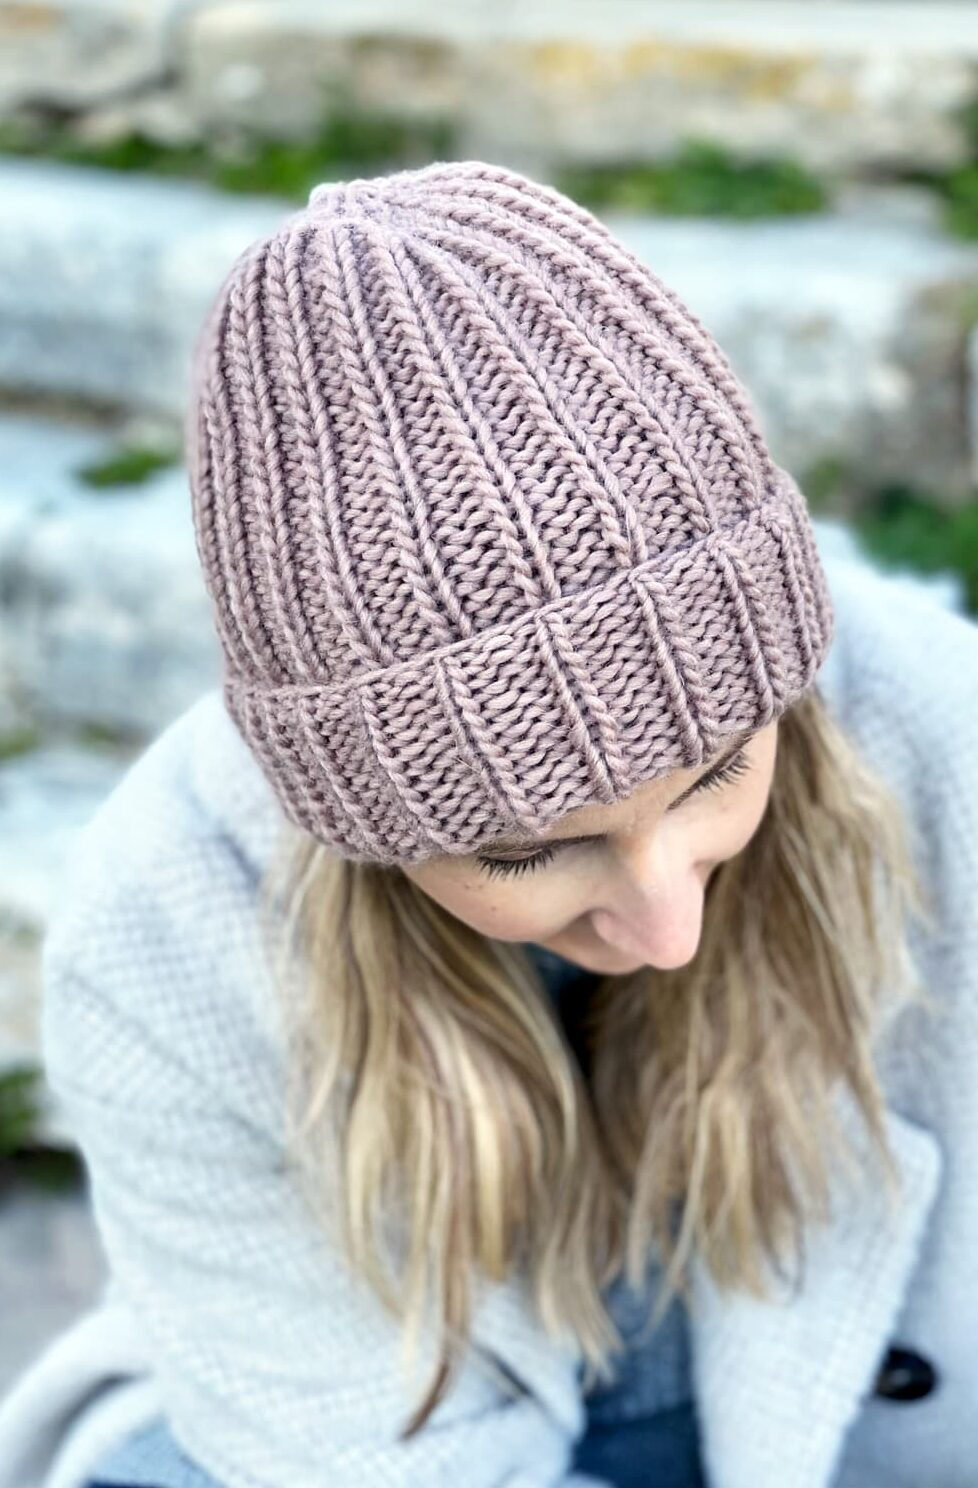 How To Knit A Hat - With Straight Needles